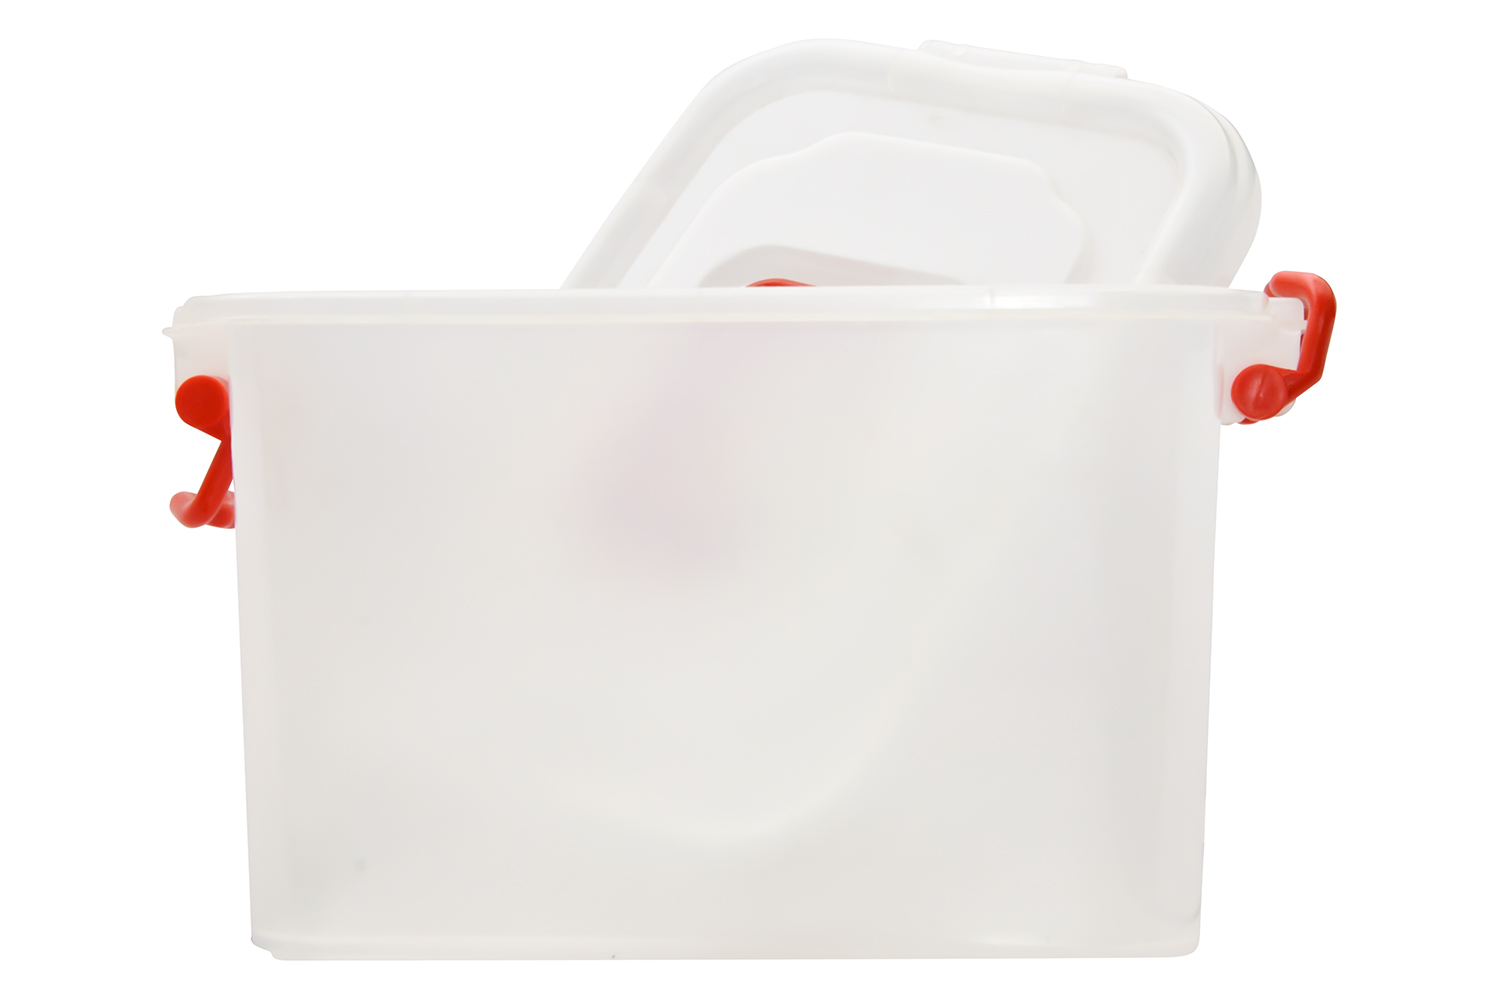 Plastic Package Container Bundle 50% SAVINGS example image 3